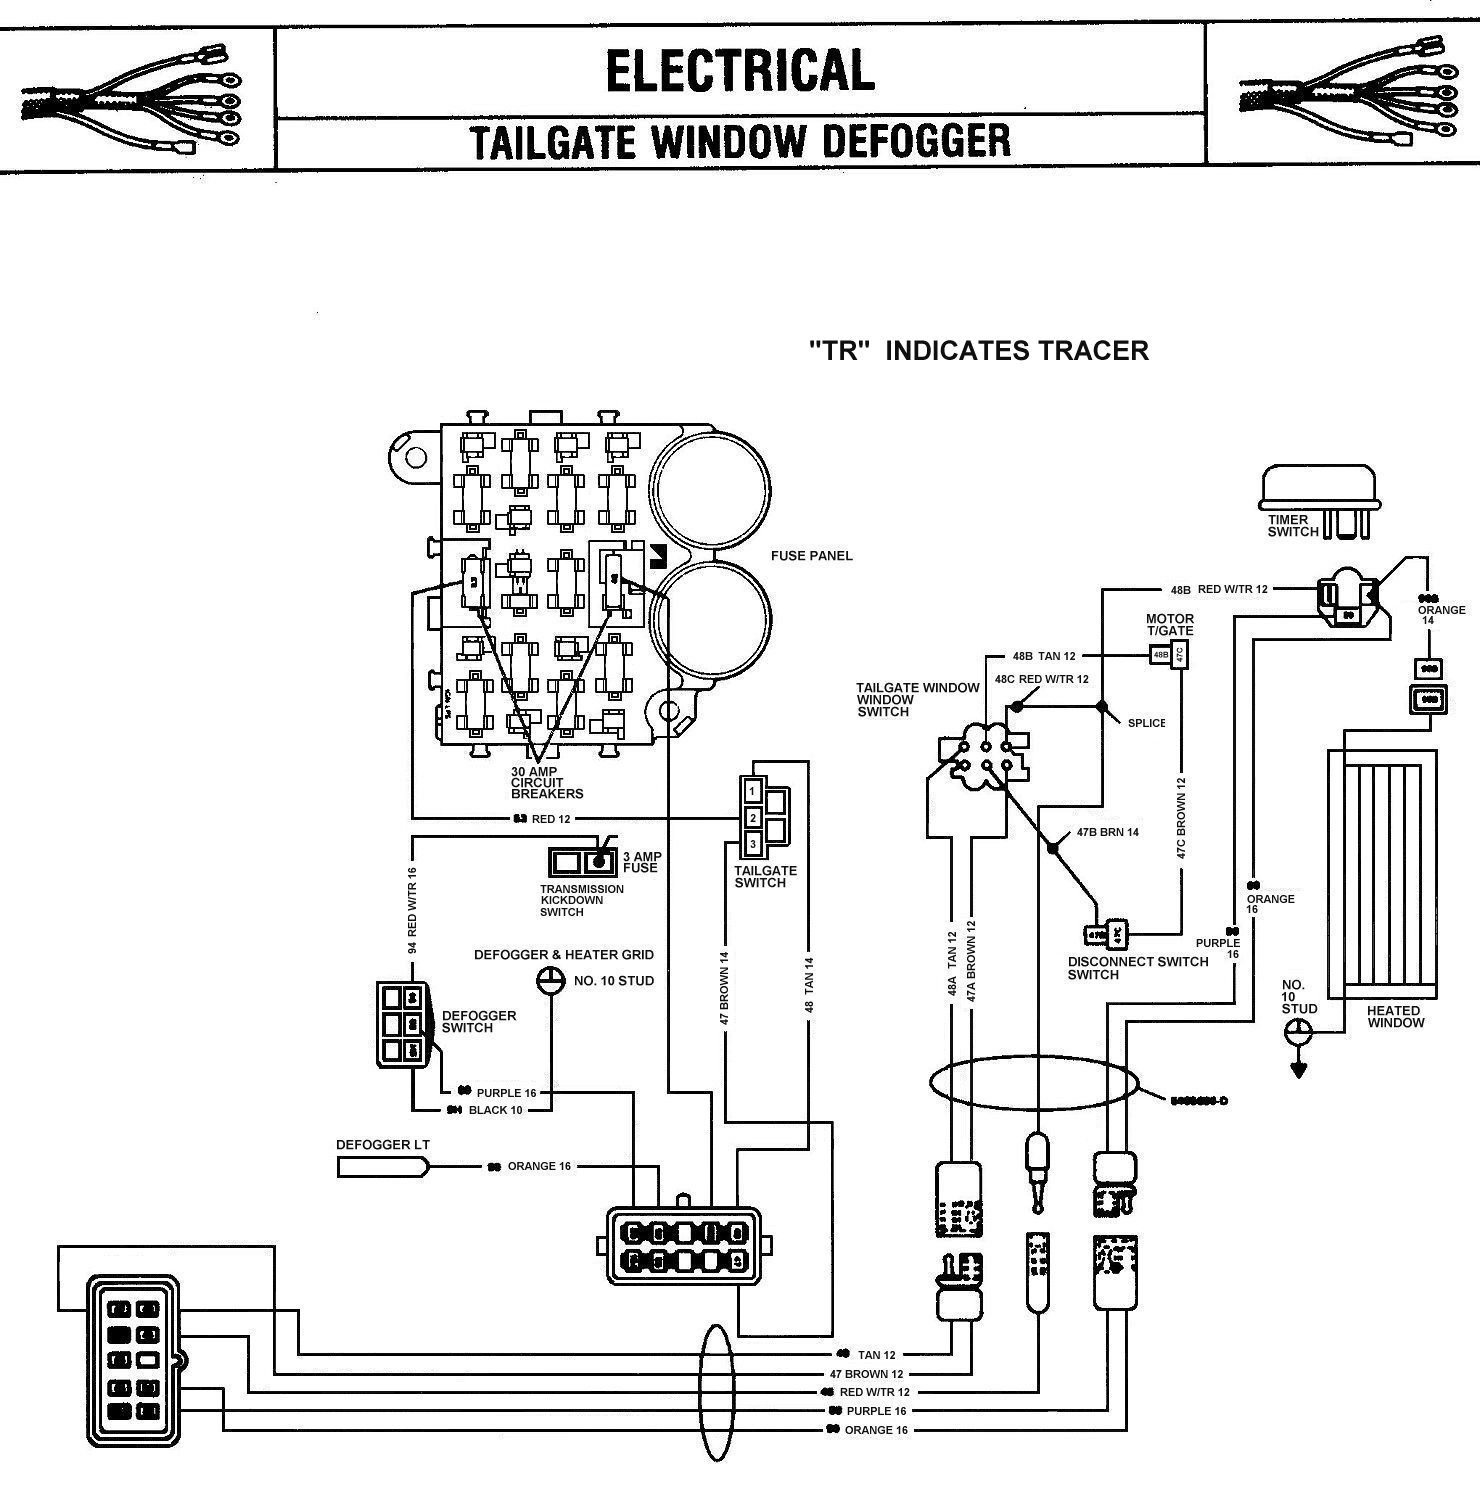 1986 Jeep Fuse Box Wires Worksheet And Wiring Diagram 95 Tom Oljeep Collins Fsj Page Rh Com Yj Cherokee